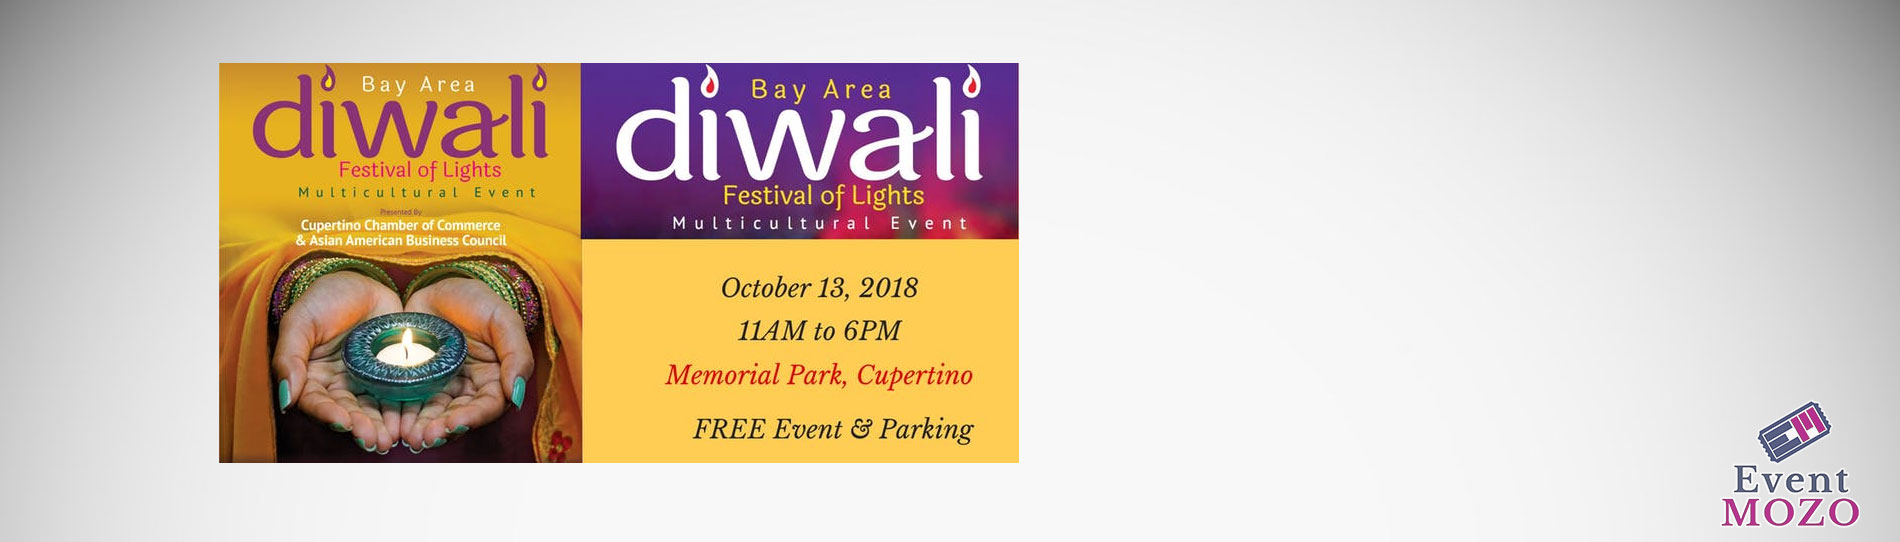 EventMozo 2018 Bay Area Diwali Festival